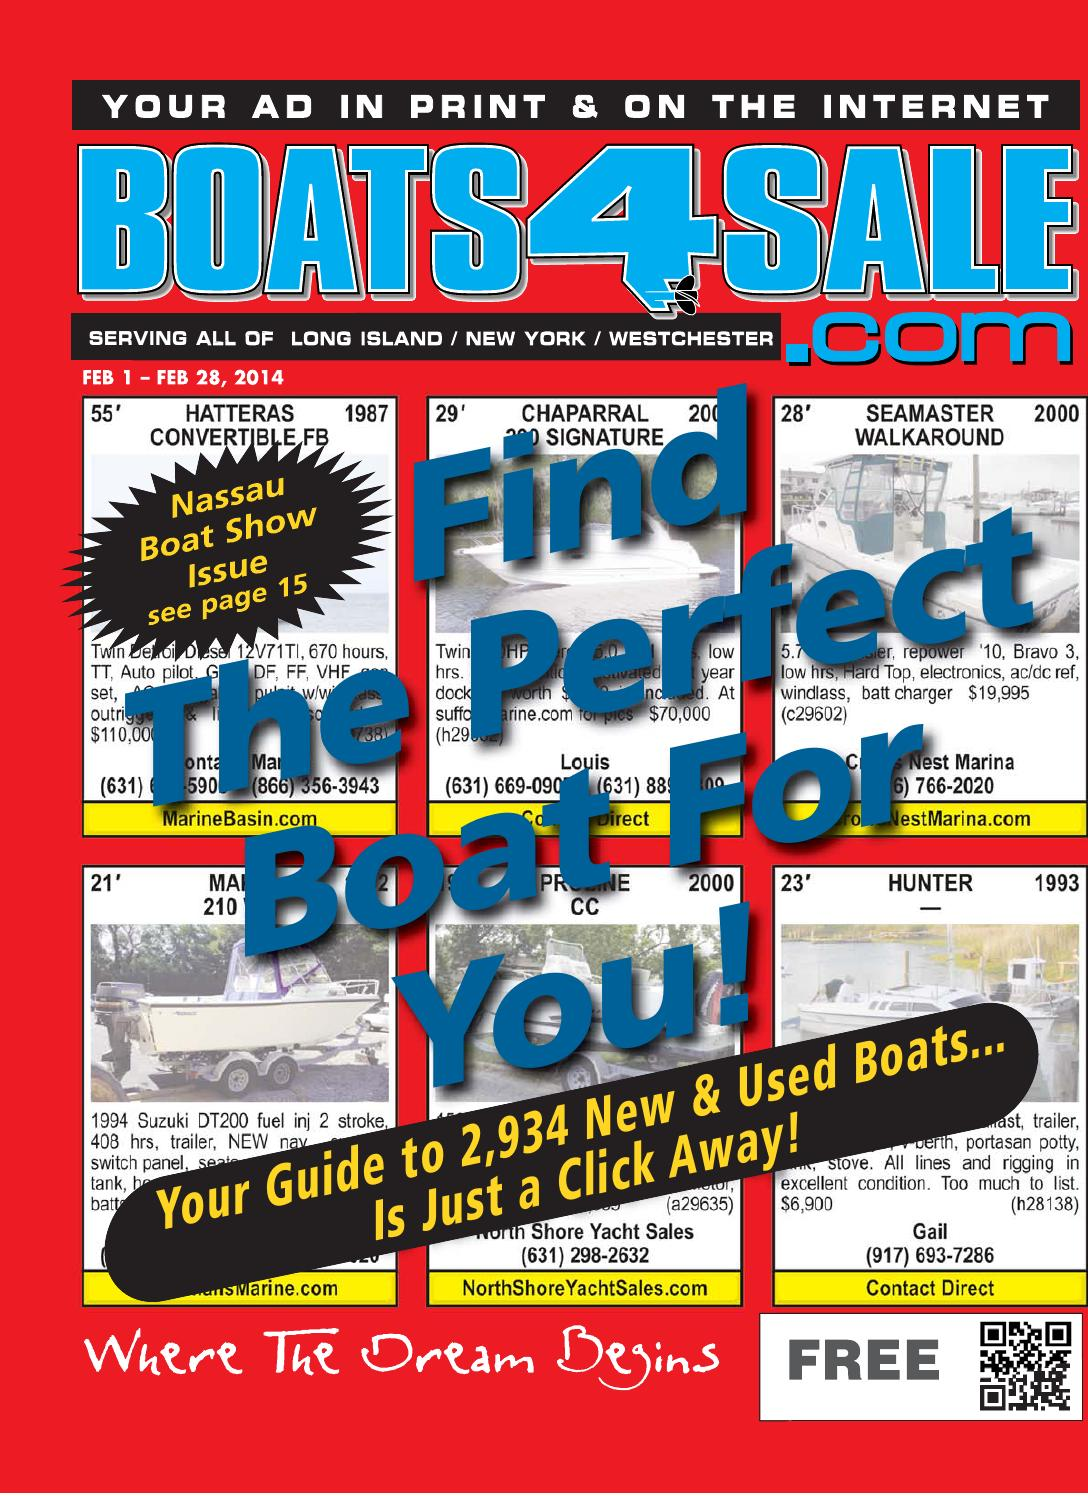 02 01 14 Boats4sale Issuu By Boats4salecom Media Suzuki Dt 200 Outboard Wiring Diagram